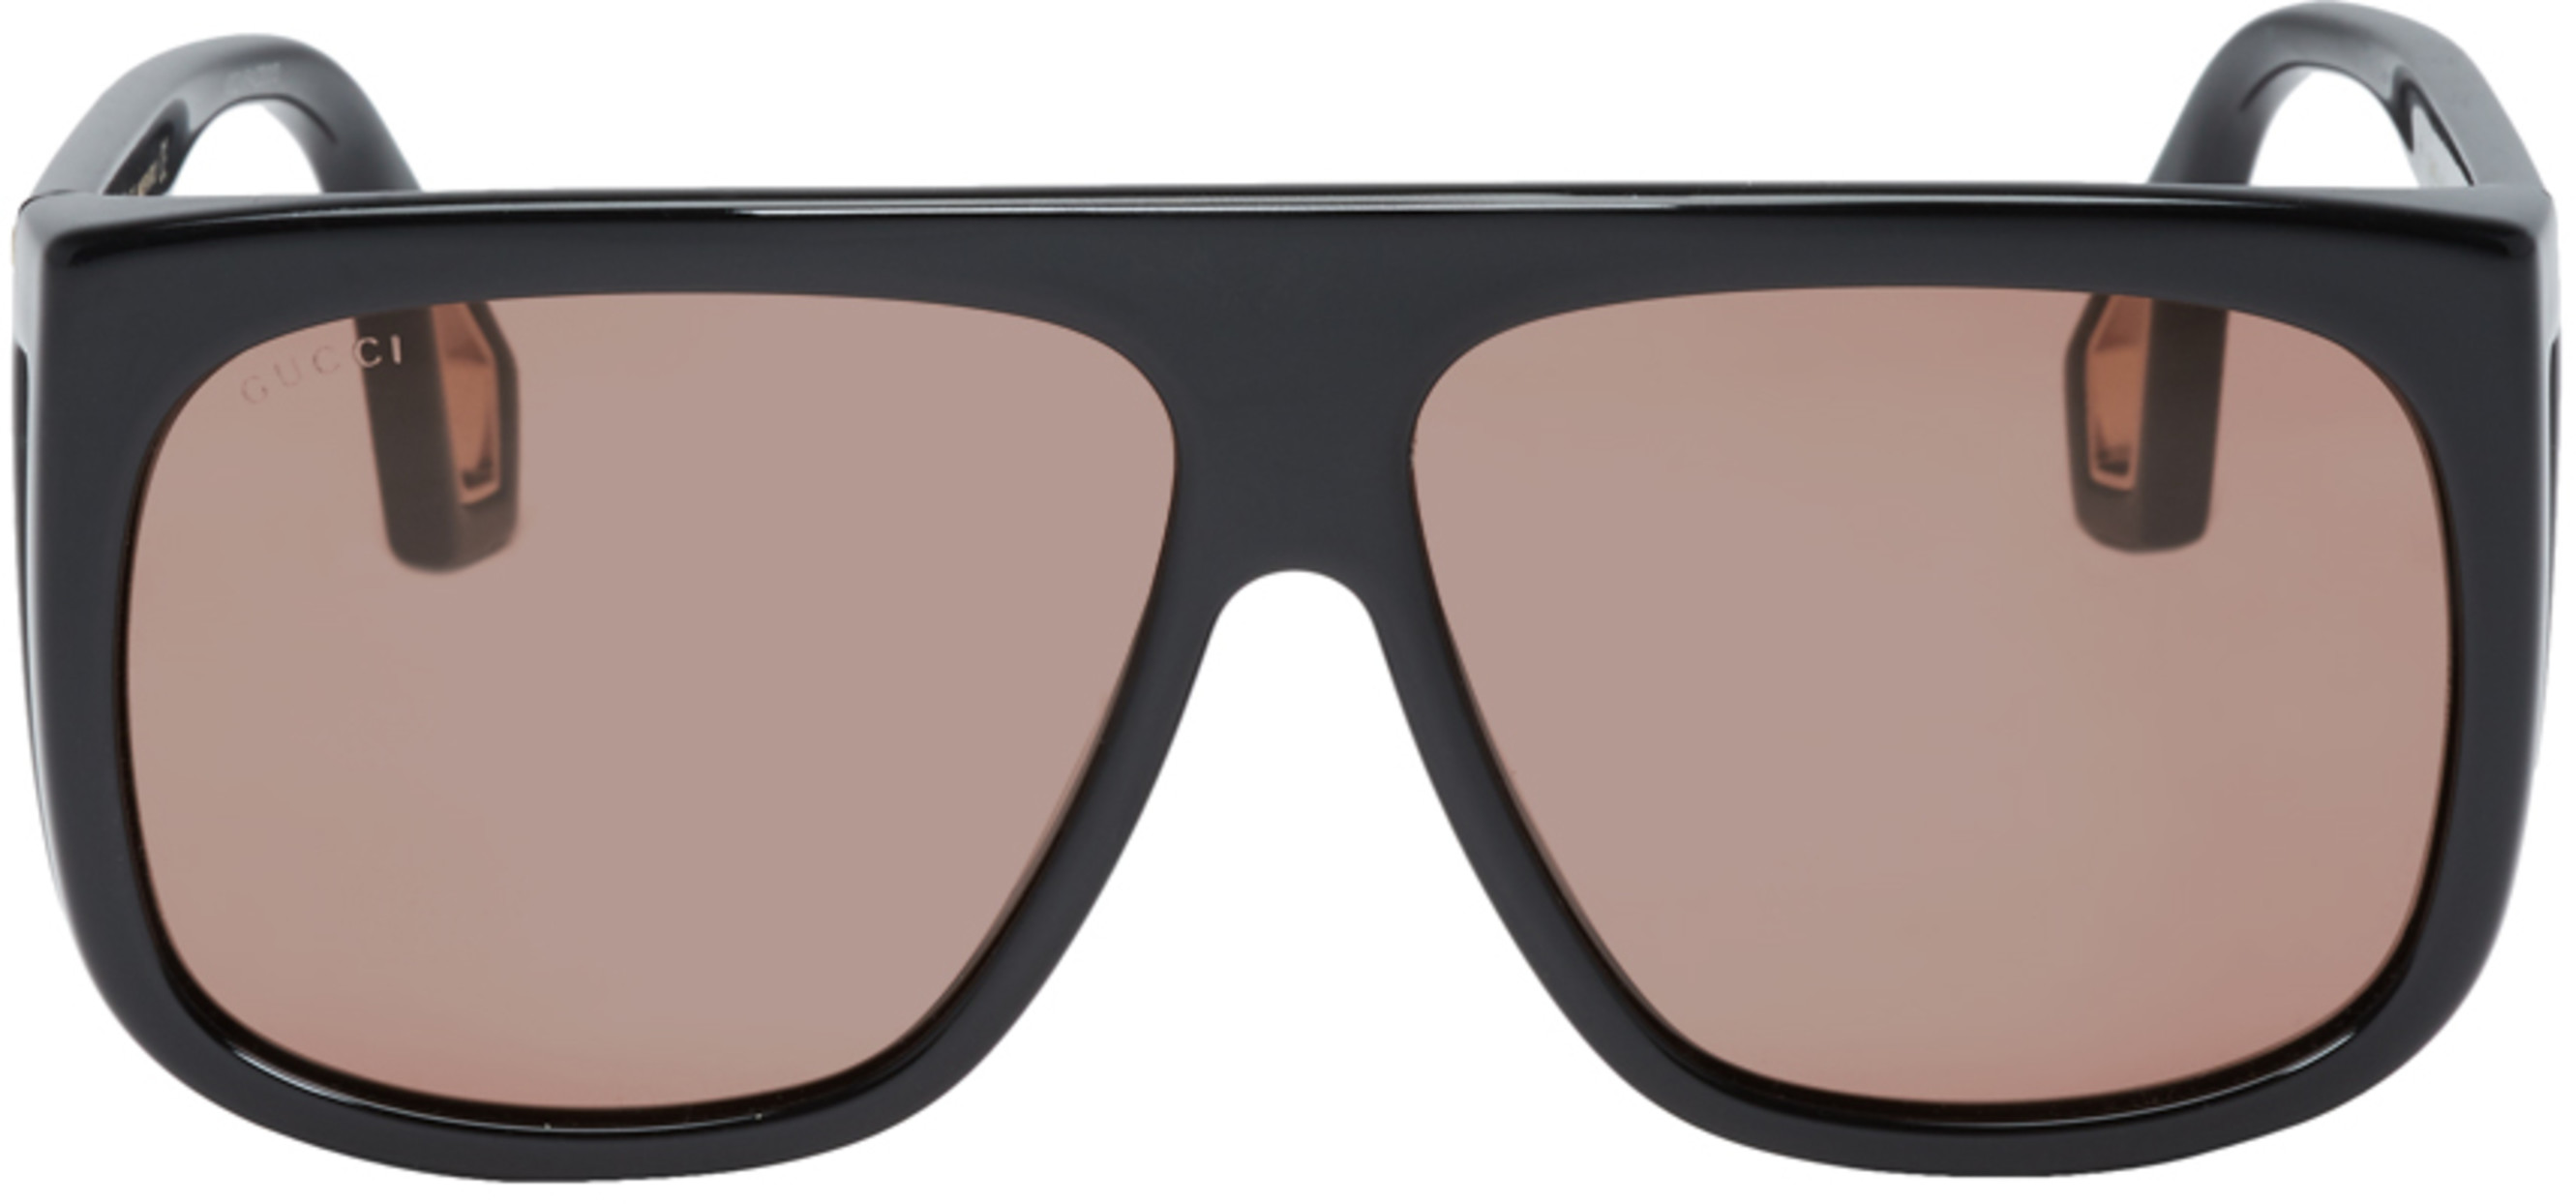 982df5d832a Gucci eyewear for Men